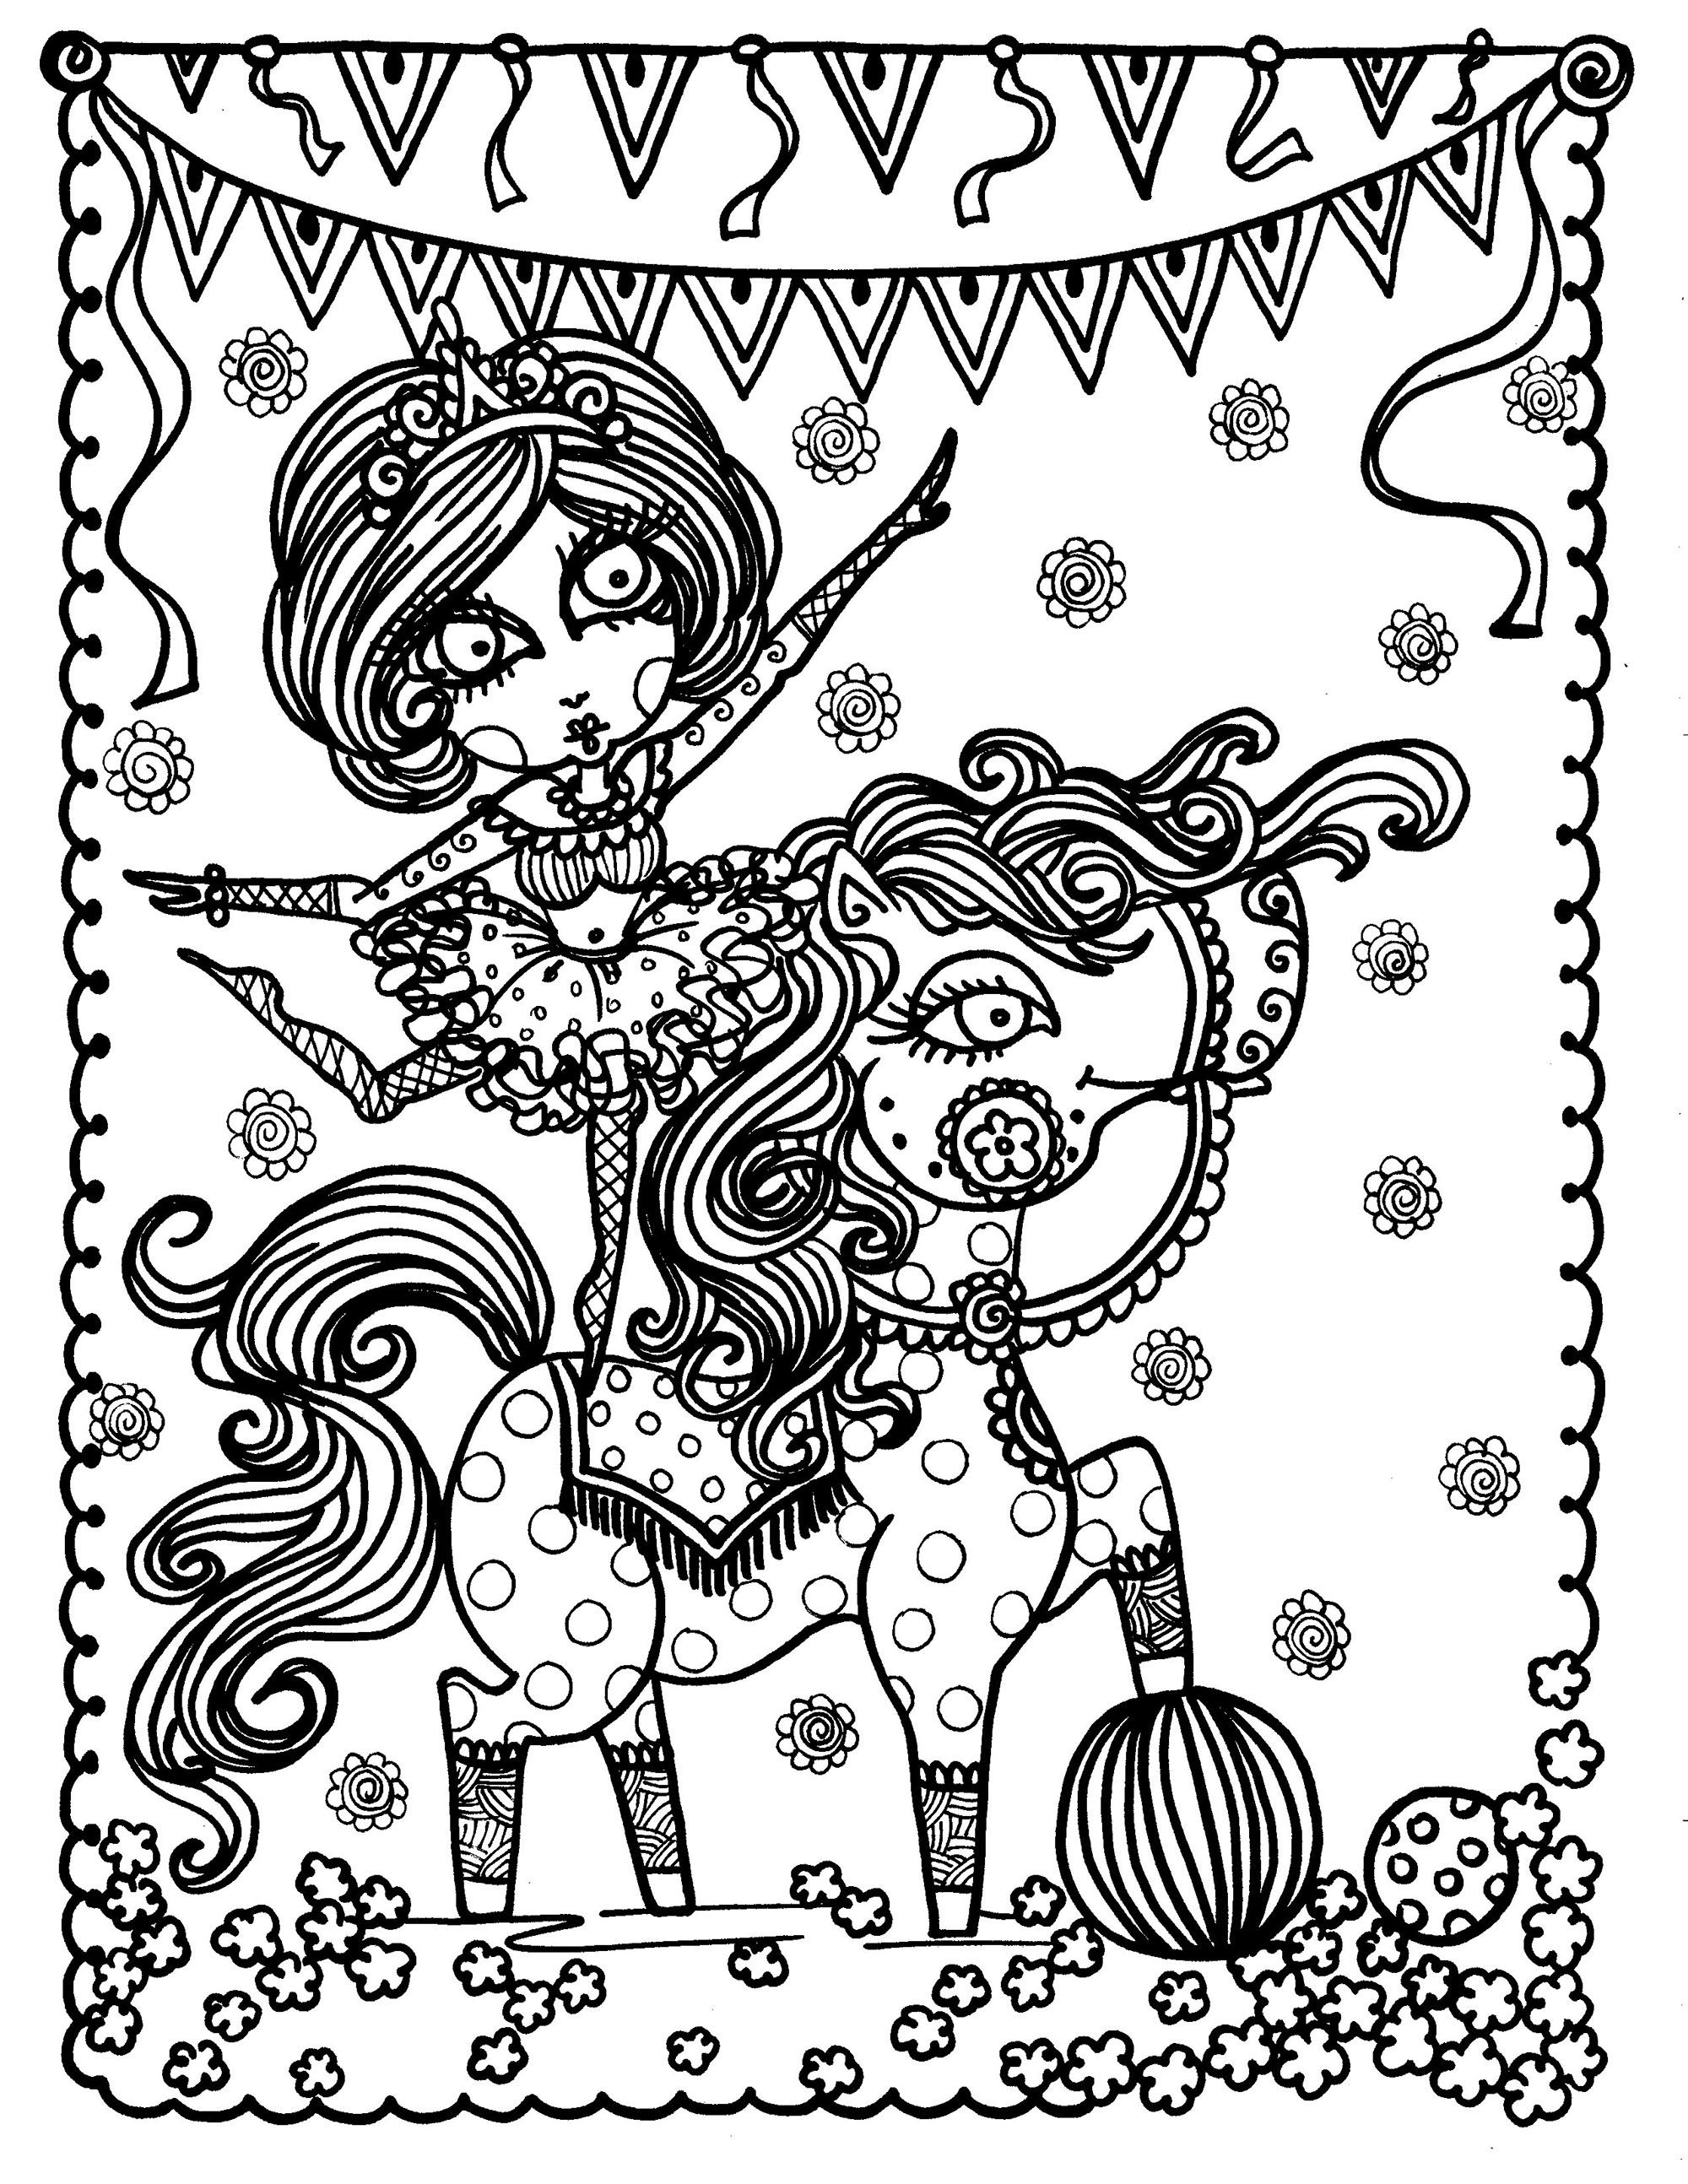 Coloring adults stress - Guaranteed Relaxation With These Complex Zen And Anti Stress Coloring Pages For Adults Inspired